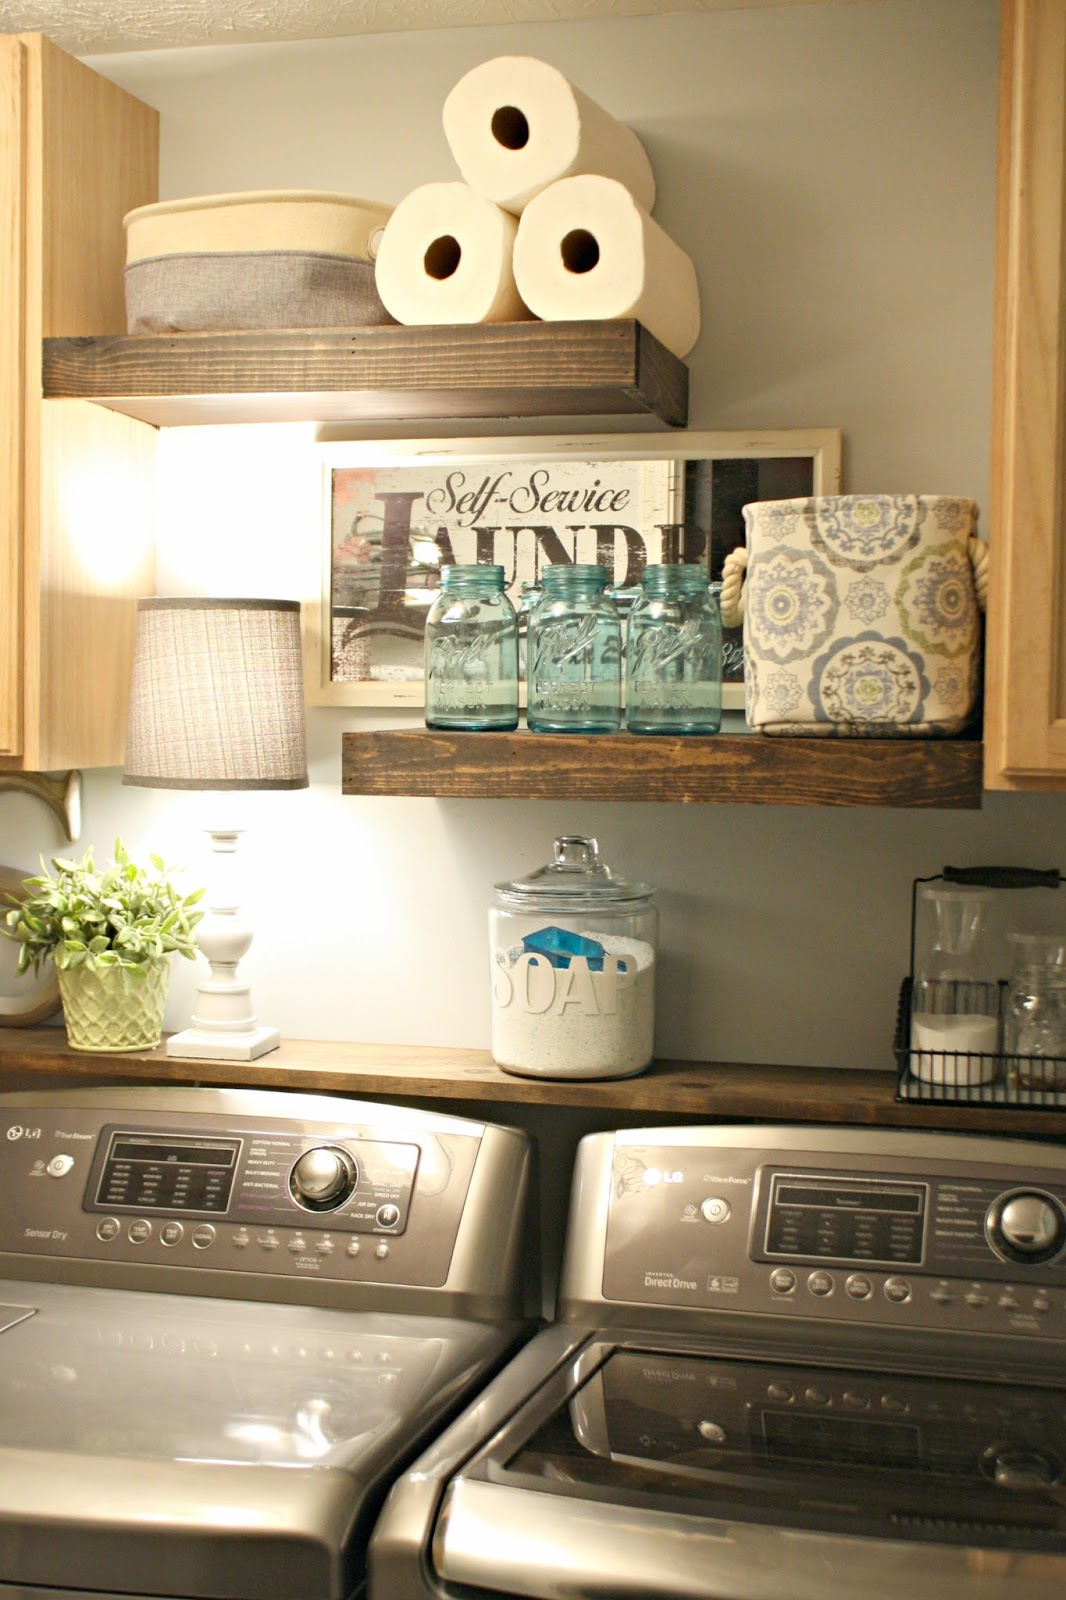 DIY laundry shelves